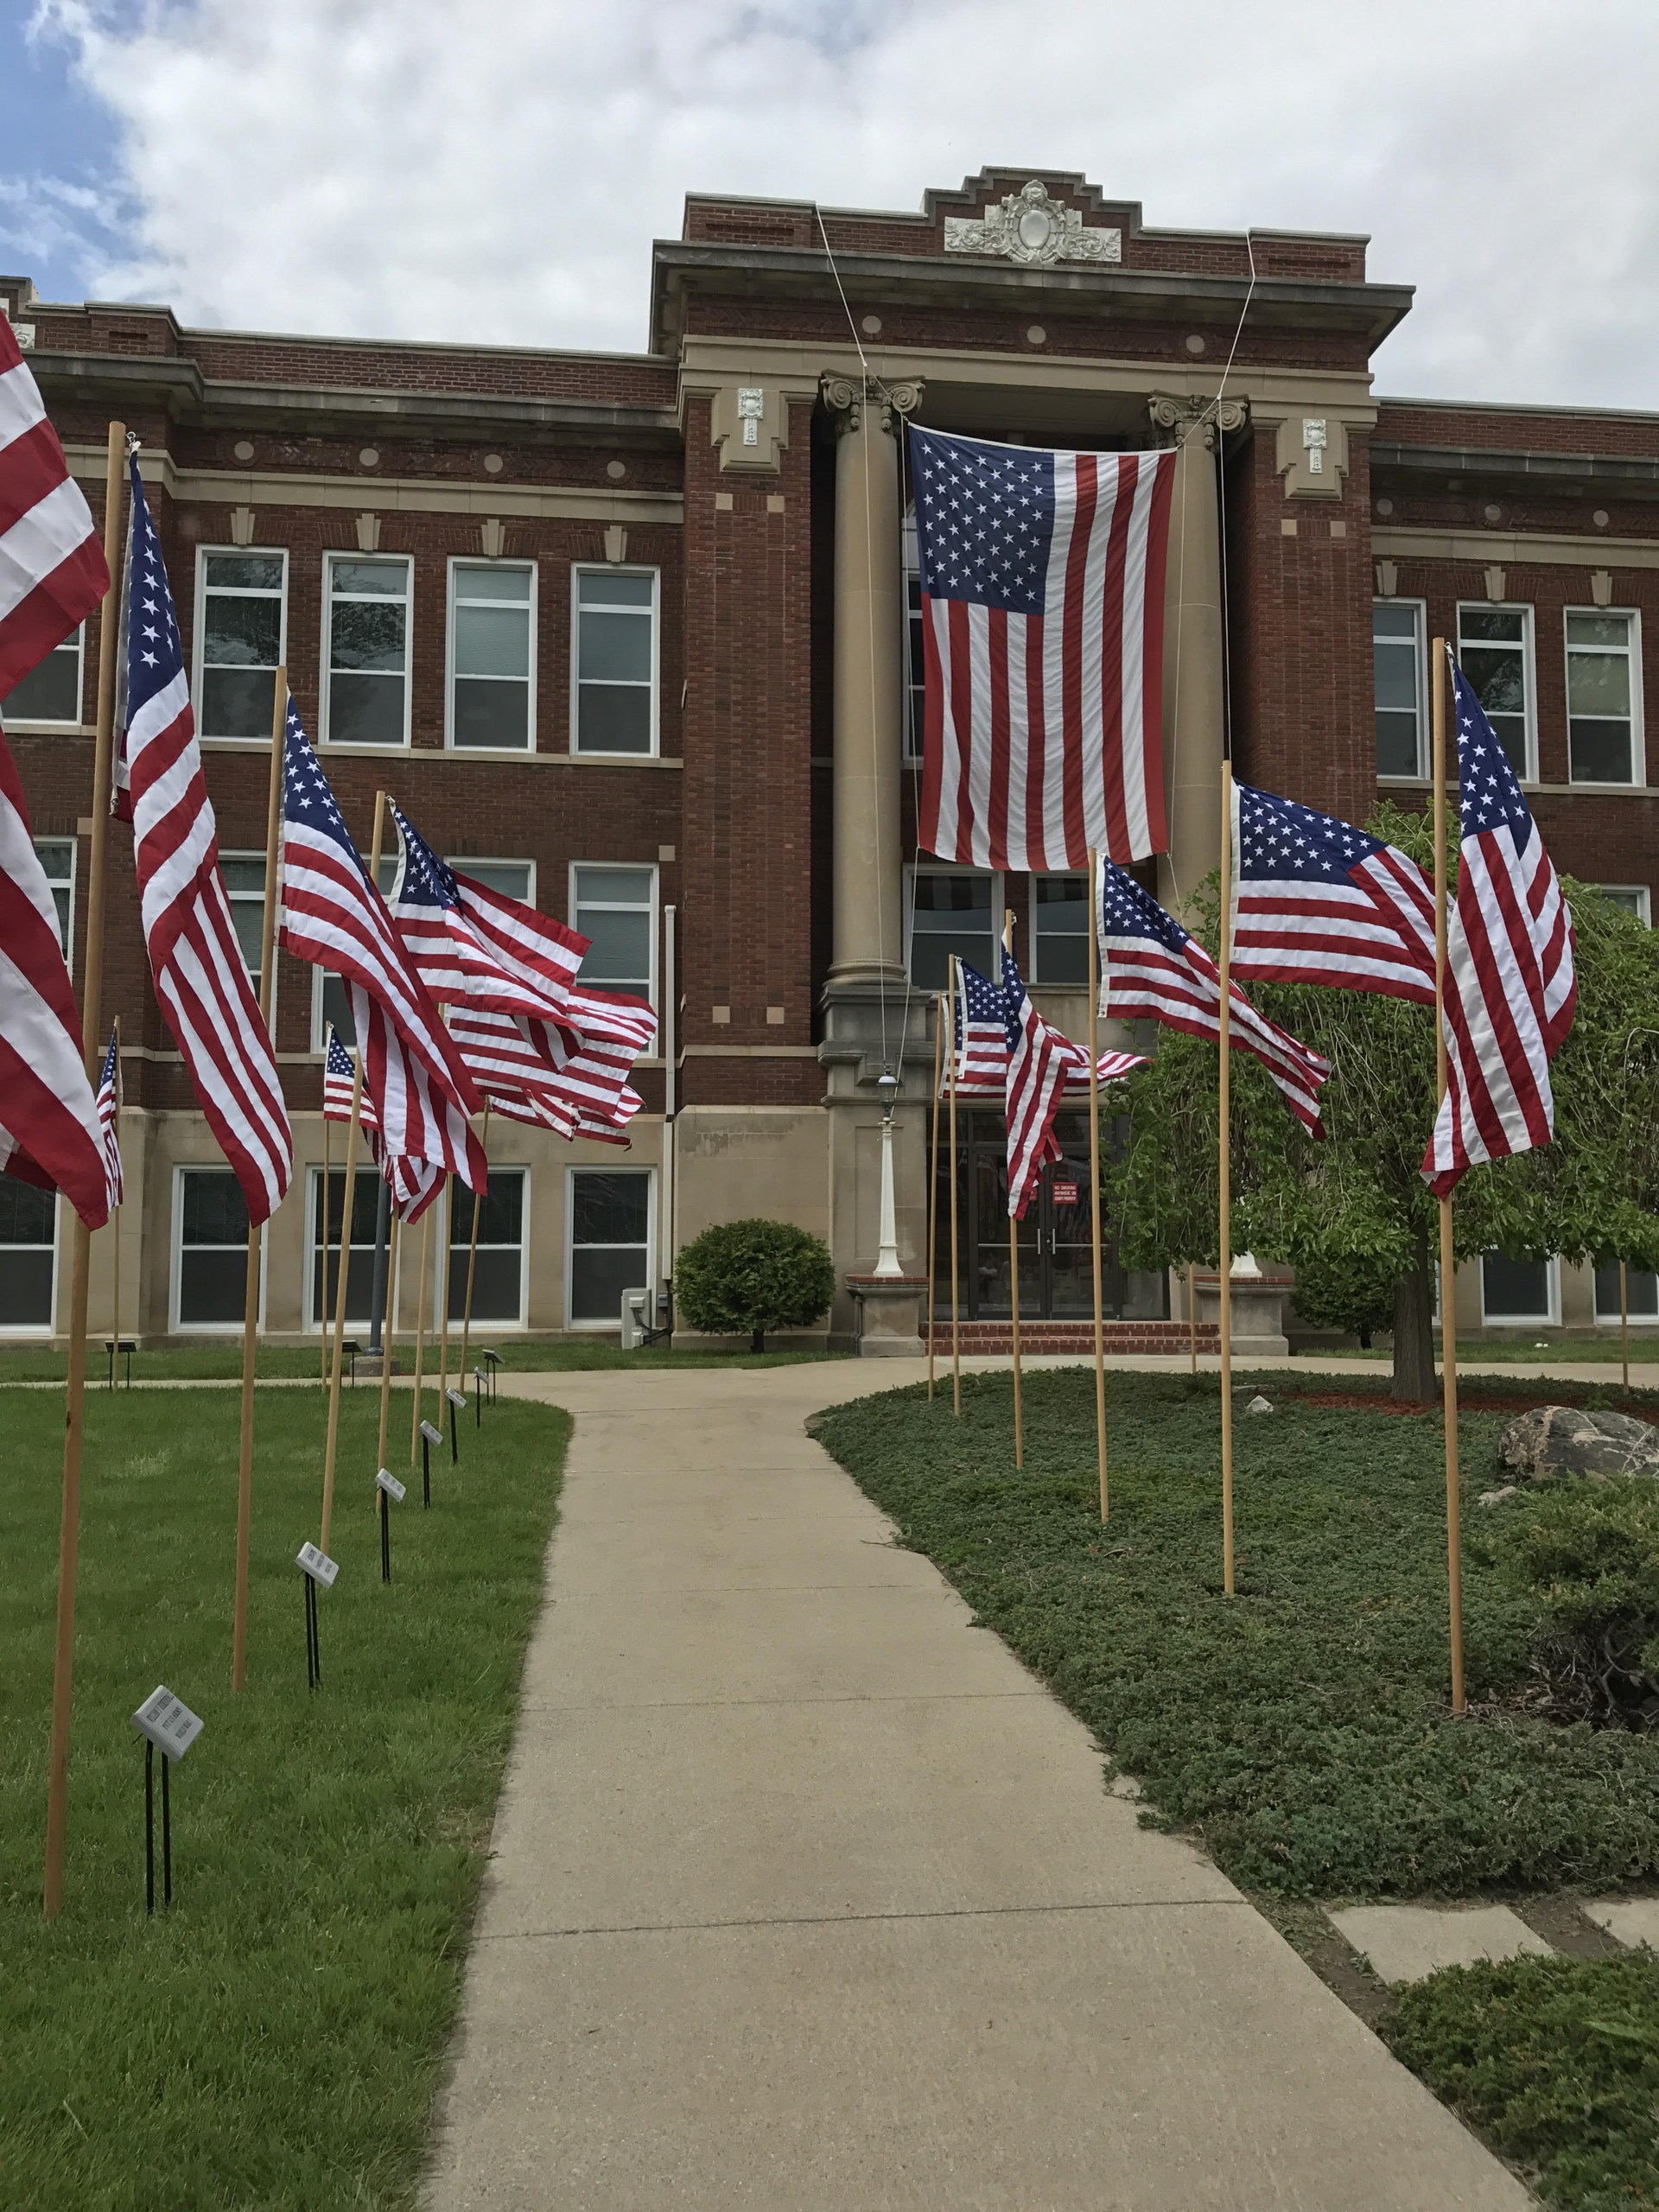 Courthouse and flags.